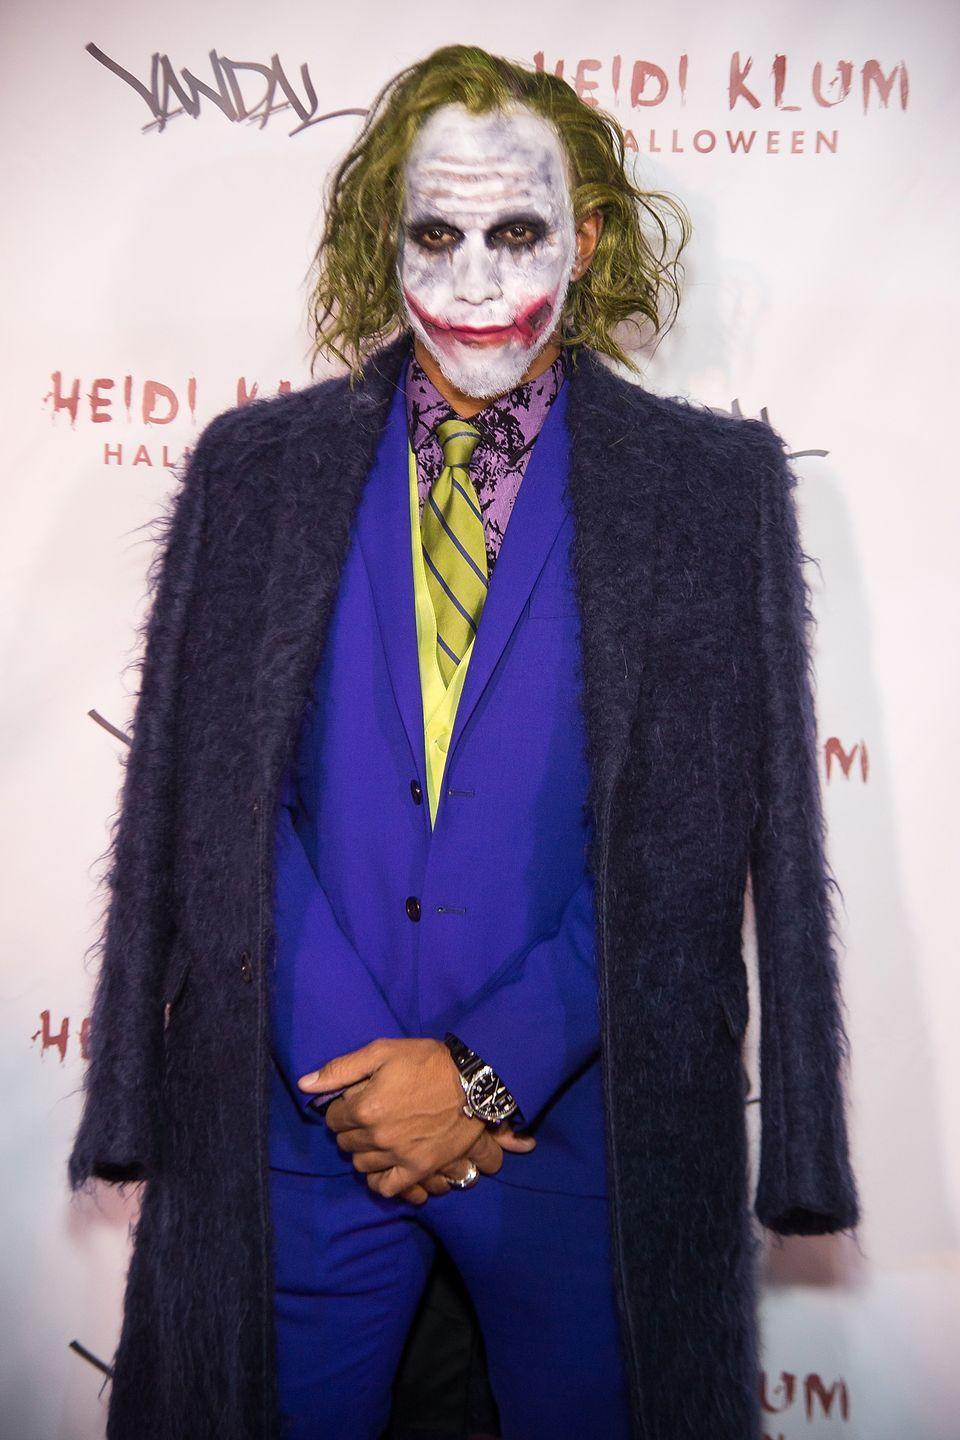 "<p>The world champion race car driver left the steering wheel to attend one of Heidi Klum's Halloween parties. His caption for a tweet about the event? <a href=""https://www.espn.com/f1/story/_/id/17942009/lewis-hamilton-becomes-joker-halloween"" rel=""nofollow noopener"" target=""_blank"" data-ylk=""slk:&quot;Why so serious?&quot;"" class=""link rapid-noclick-resp"">""Why so serious?""</a></p>"